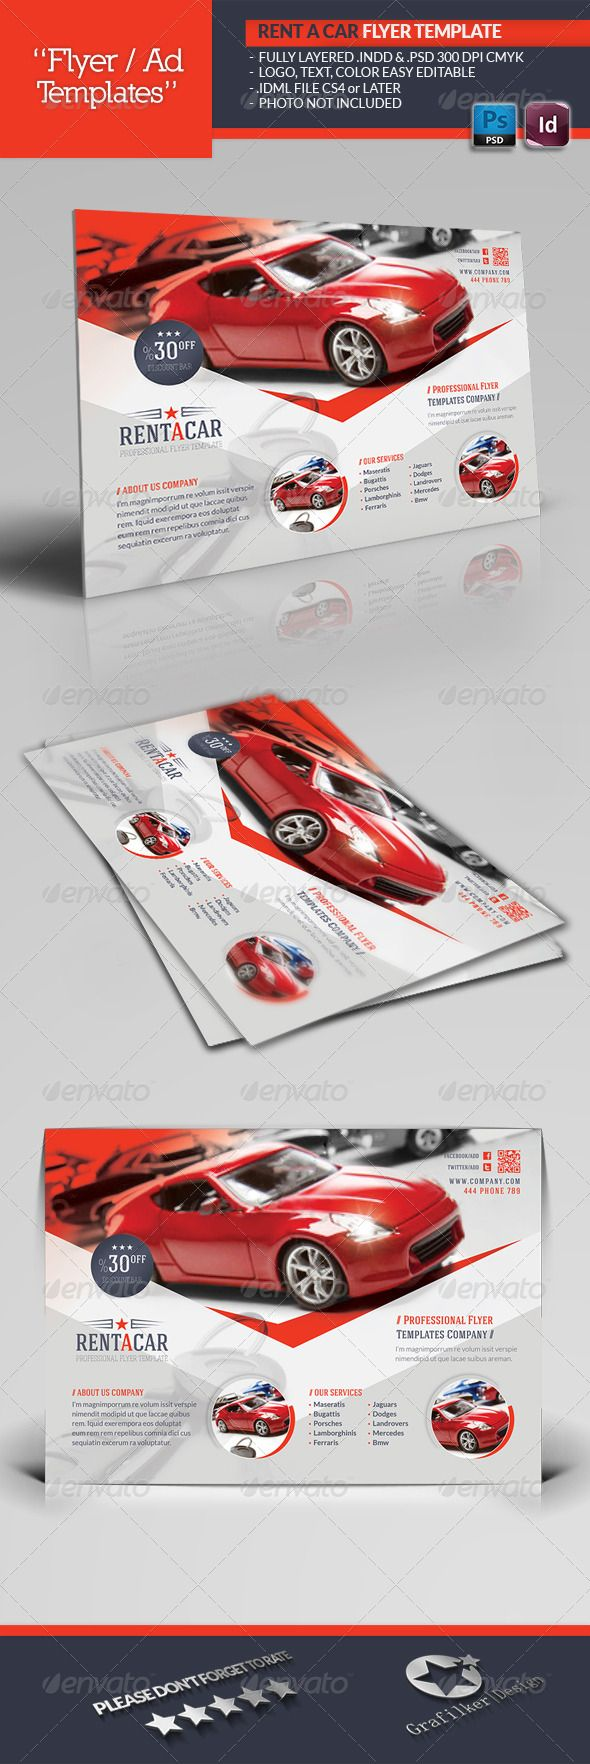 Rent A Car Flyer Template  #GraphicRiver        Rent A Car Flyer Template  Fully layered INDD   Fully layered PSD   300 Dpi, CMYK   IDML format open Indesign CS4 or later  Completely editable, print ready  Text/Font or Color can be altered as needed  All Image are in vector format, so can customise easily  Photos are not included in the file  Font File: Lato Font:  .fontsquirrel /fonts/lato Haign Font: fontfabric /hagin-free-font/ Social-Logos:  .dafont /social-logos.font   Help.txt file…